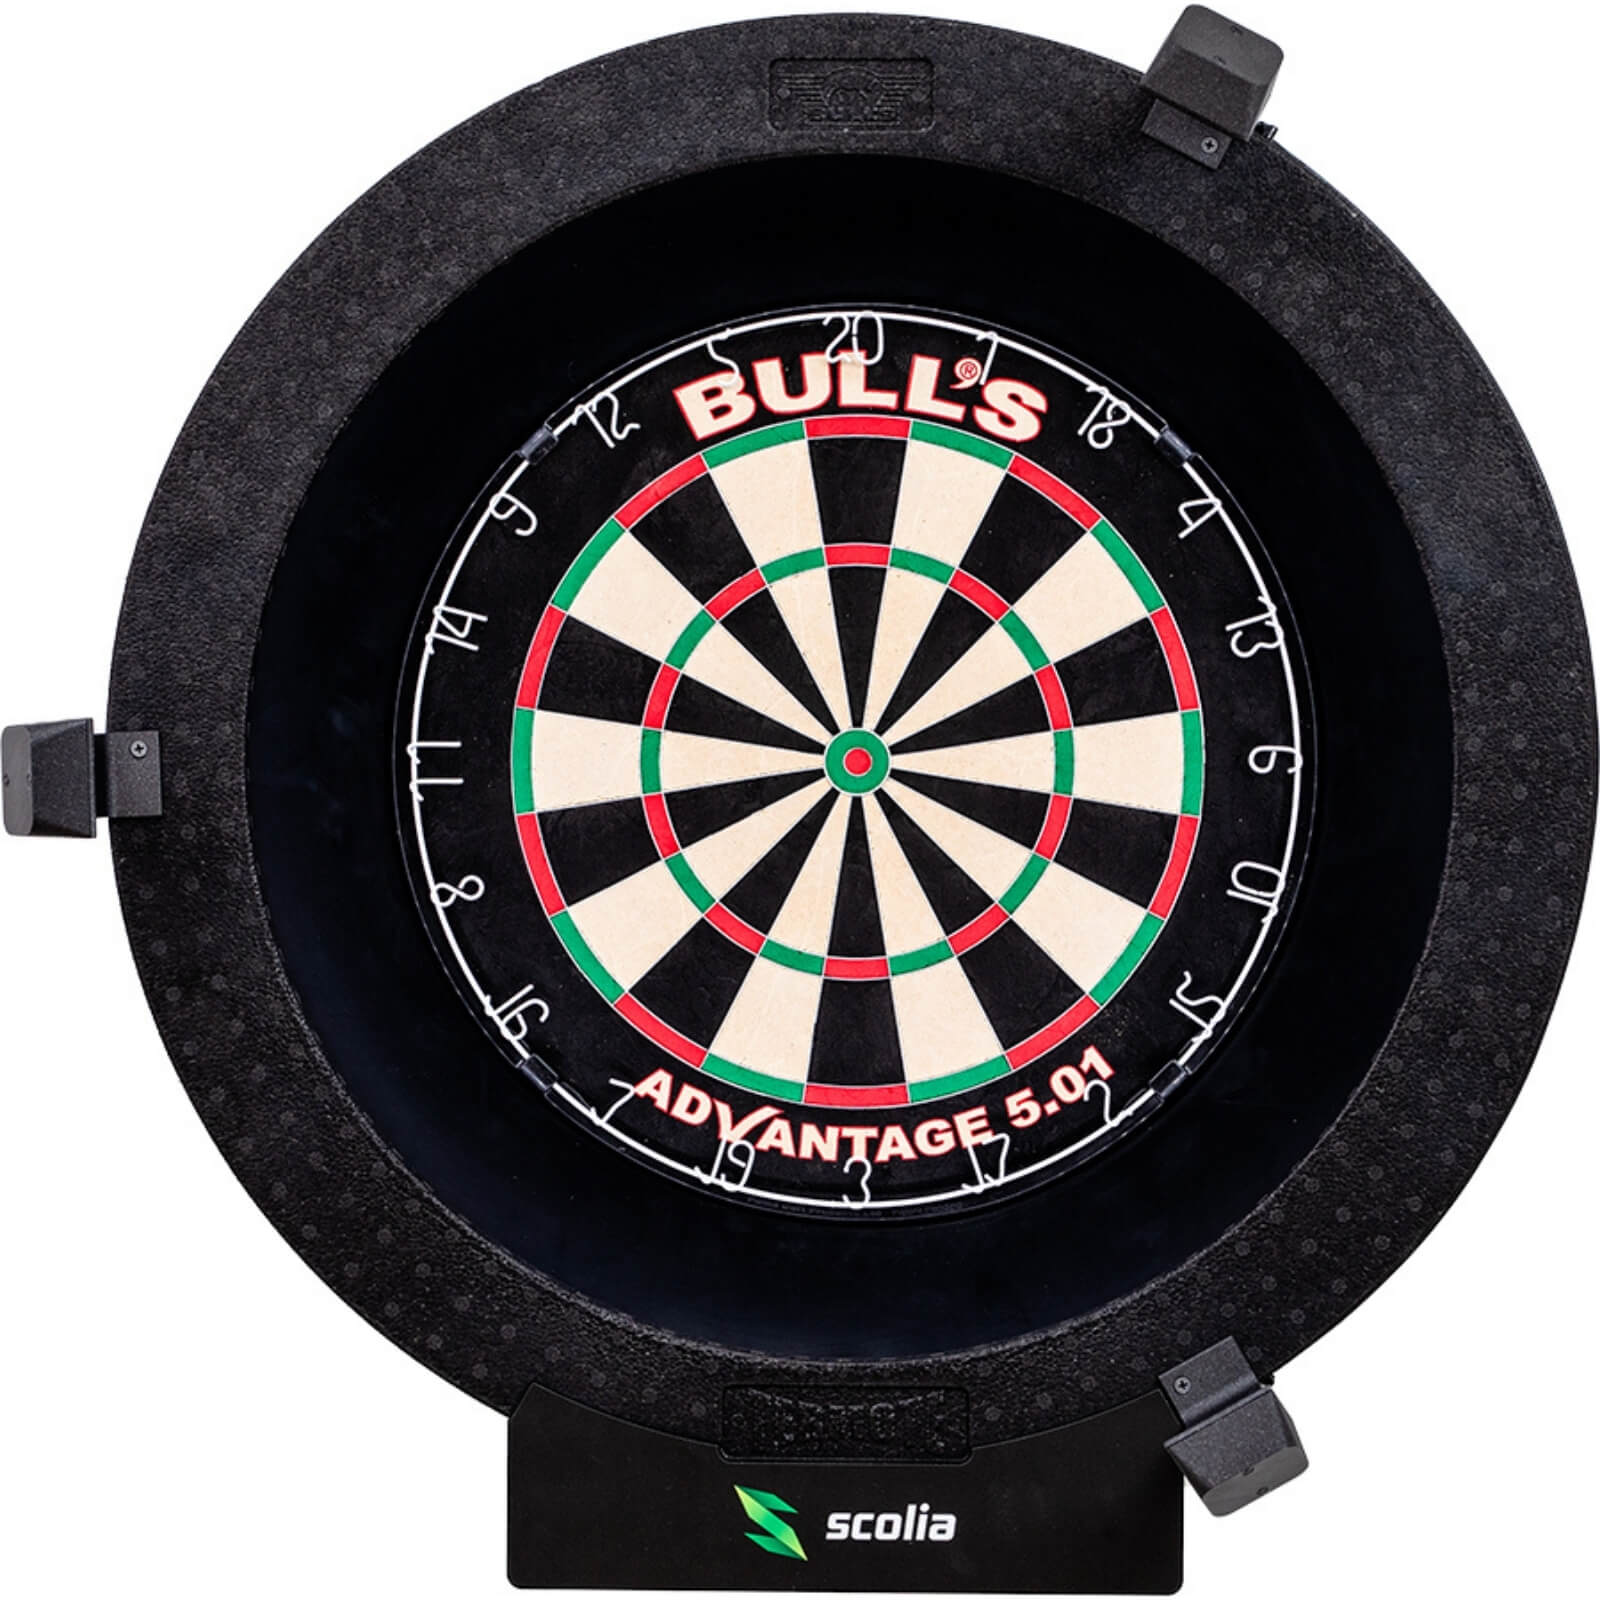 Scoring Accessories - Scolia - Home - Automated Darts Scoring System with Bulls Termote 2.0 Light